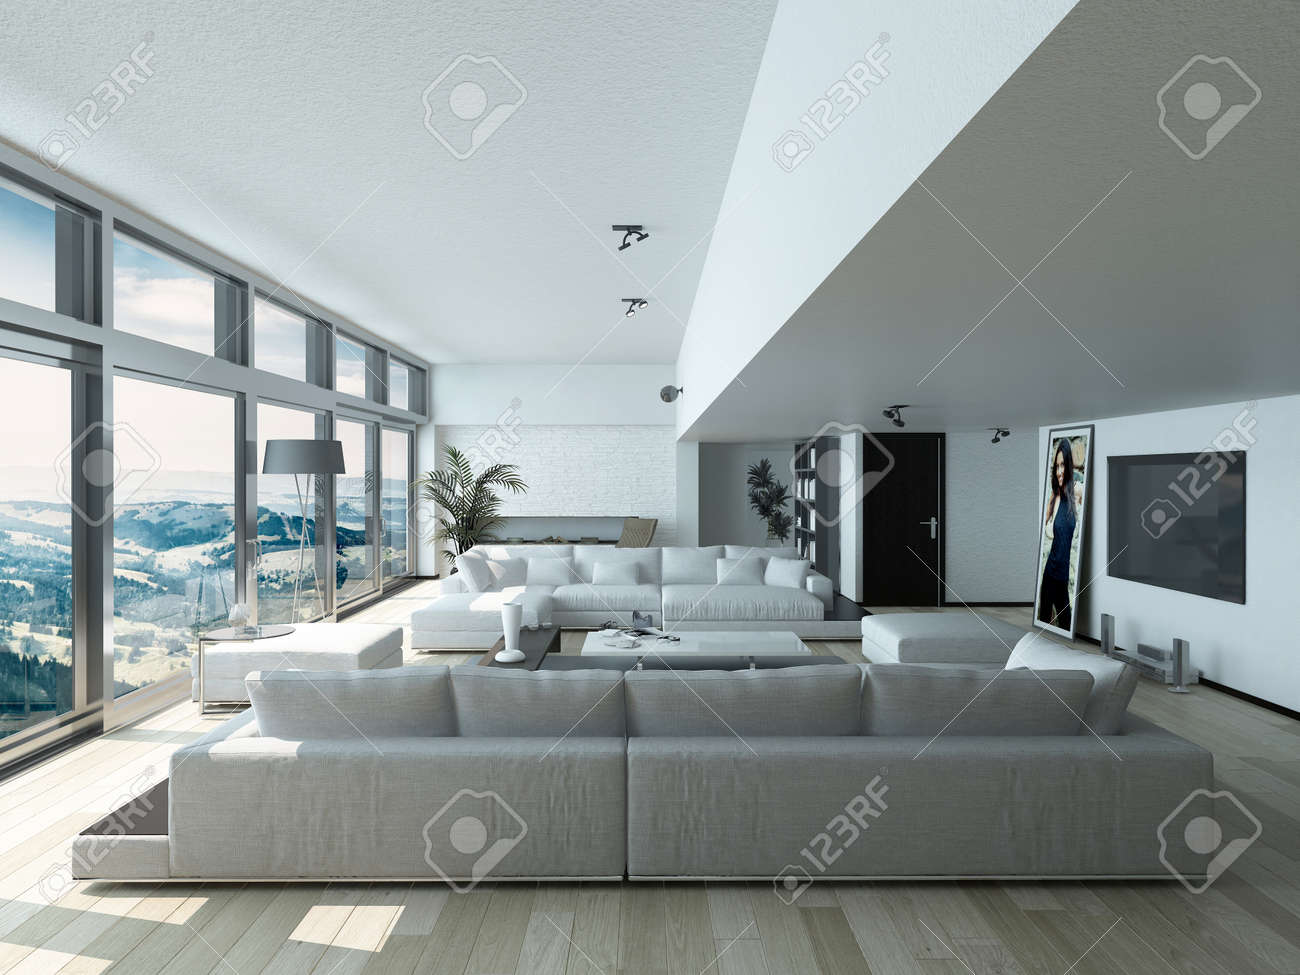 Modern Living Room Design with Elegant Couches Inside Architectural..